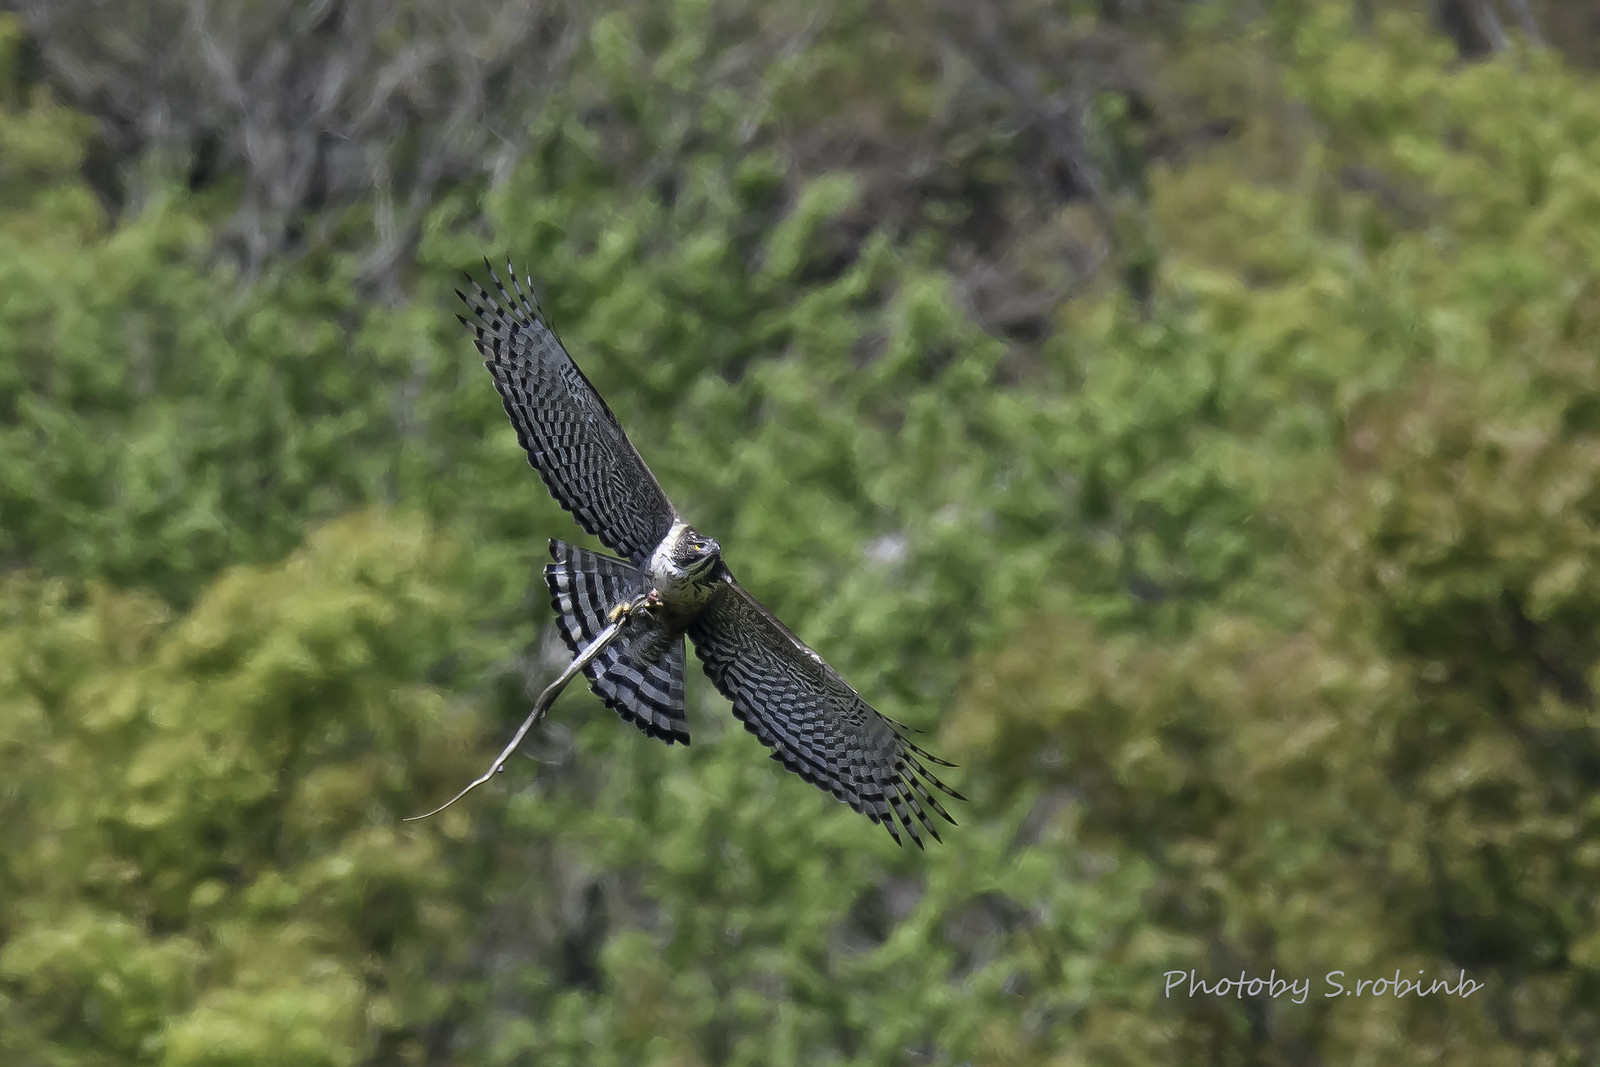 The Mountain hawk-eagle of prey have